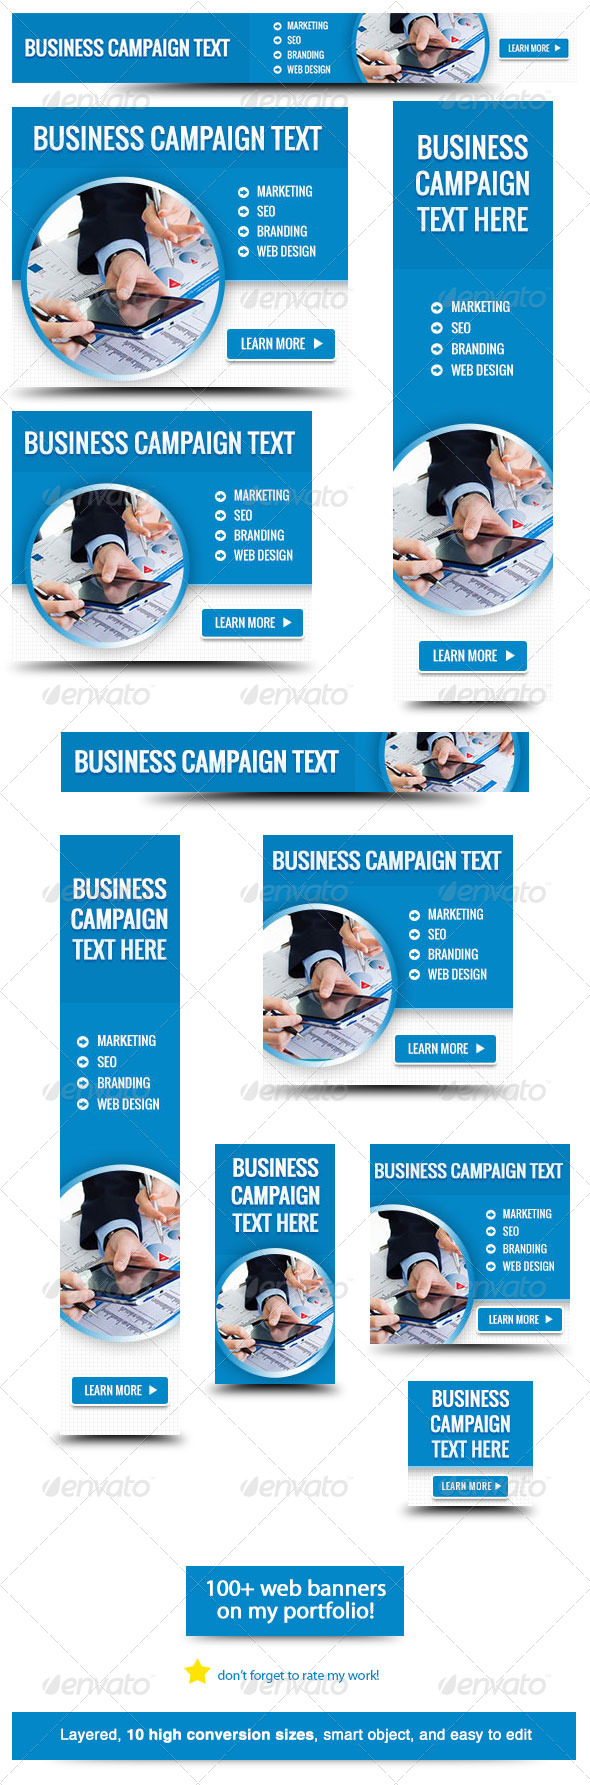 online marketing campaign template - corporate web banner design template 33 graphicriver